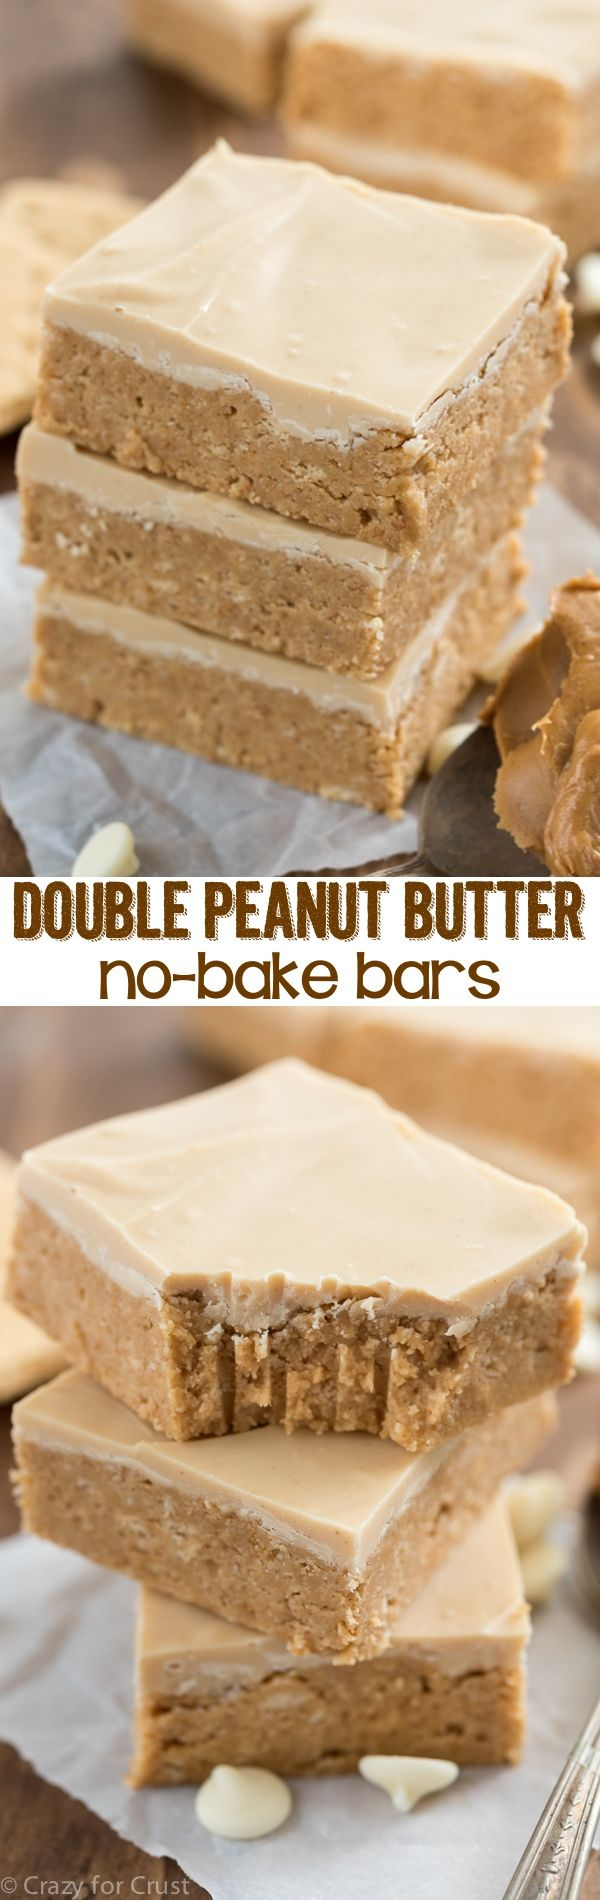 Like the inside of a peanut butter cup, these EASY Double Peanut Butter Bars are no-bake and come together in minutes. Topped with peanut butter white chocolate these bars are a super peanut buttery recipe!